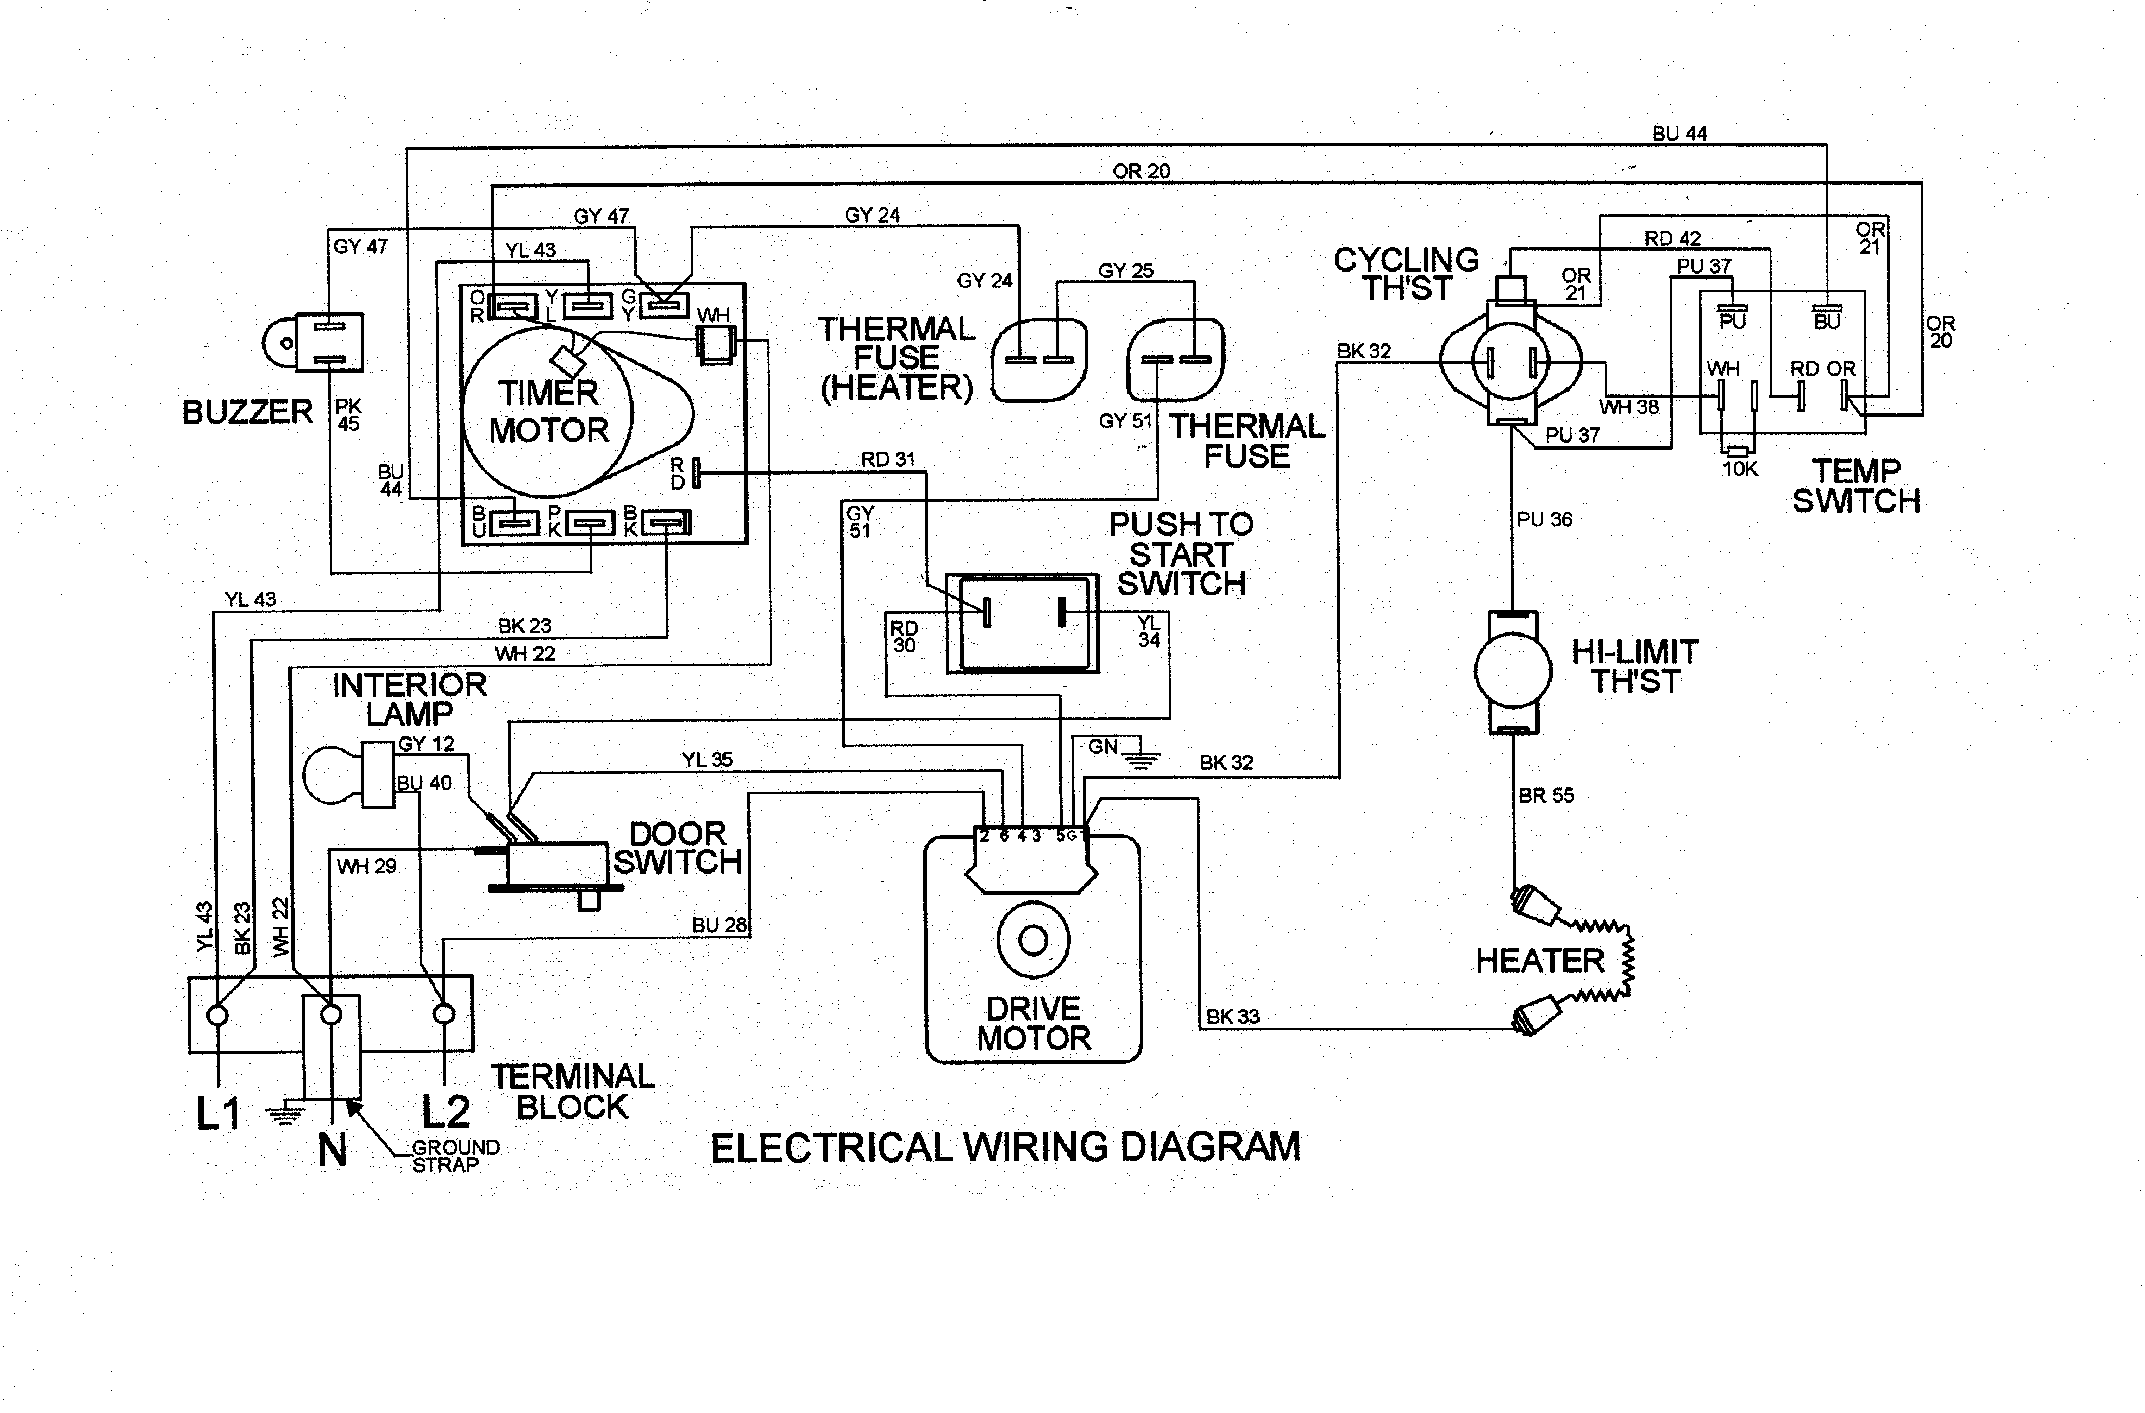 Maytag Dryer Door Switch Wiring Diagram from diagramweb.net